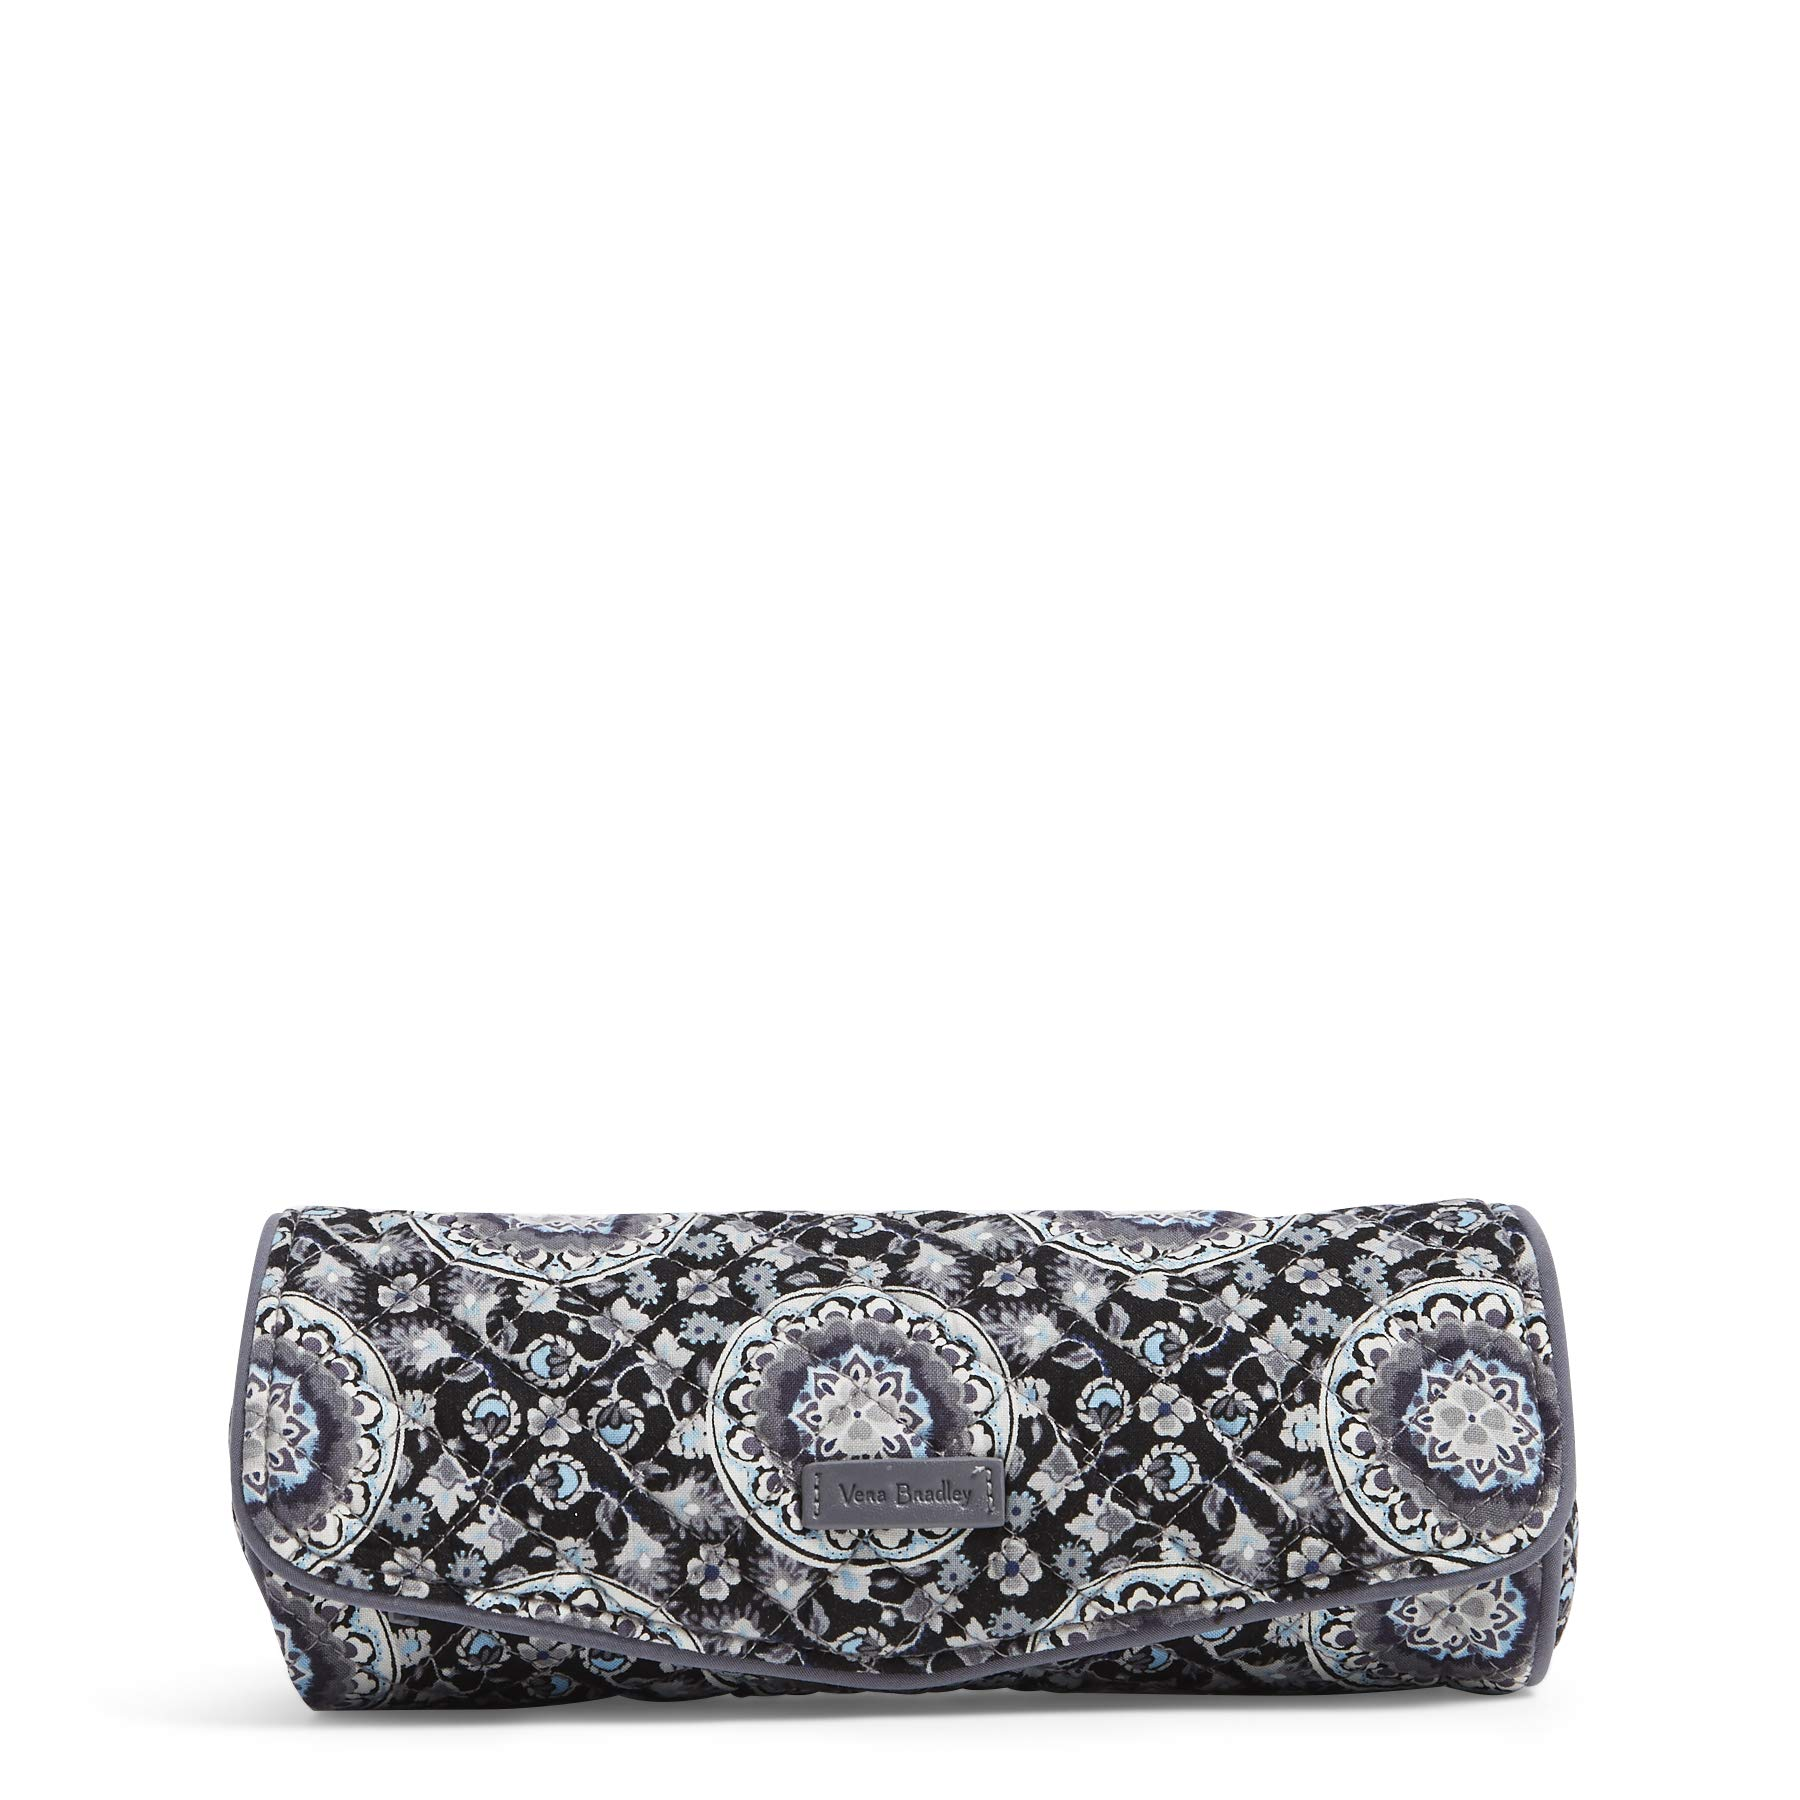 Vera Bradley Iconic On a Roll Case, Signature Cotton, Charcoal Medallion